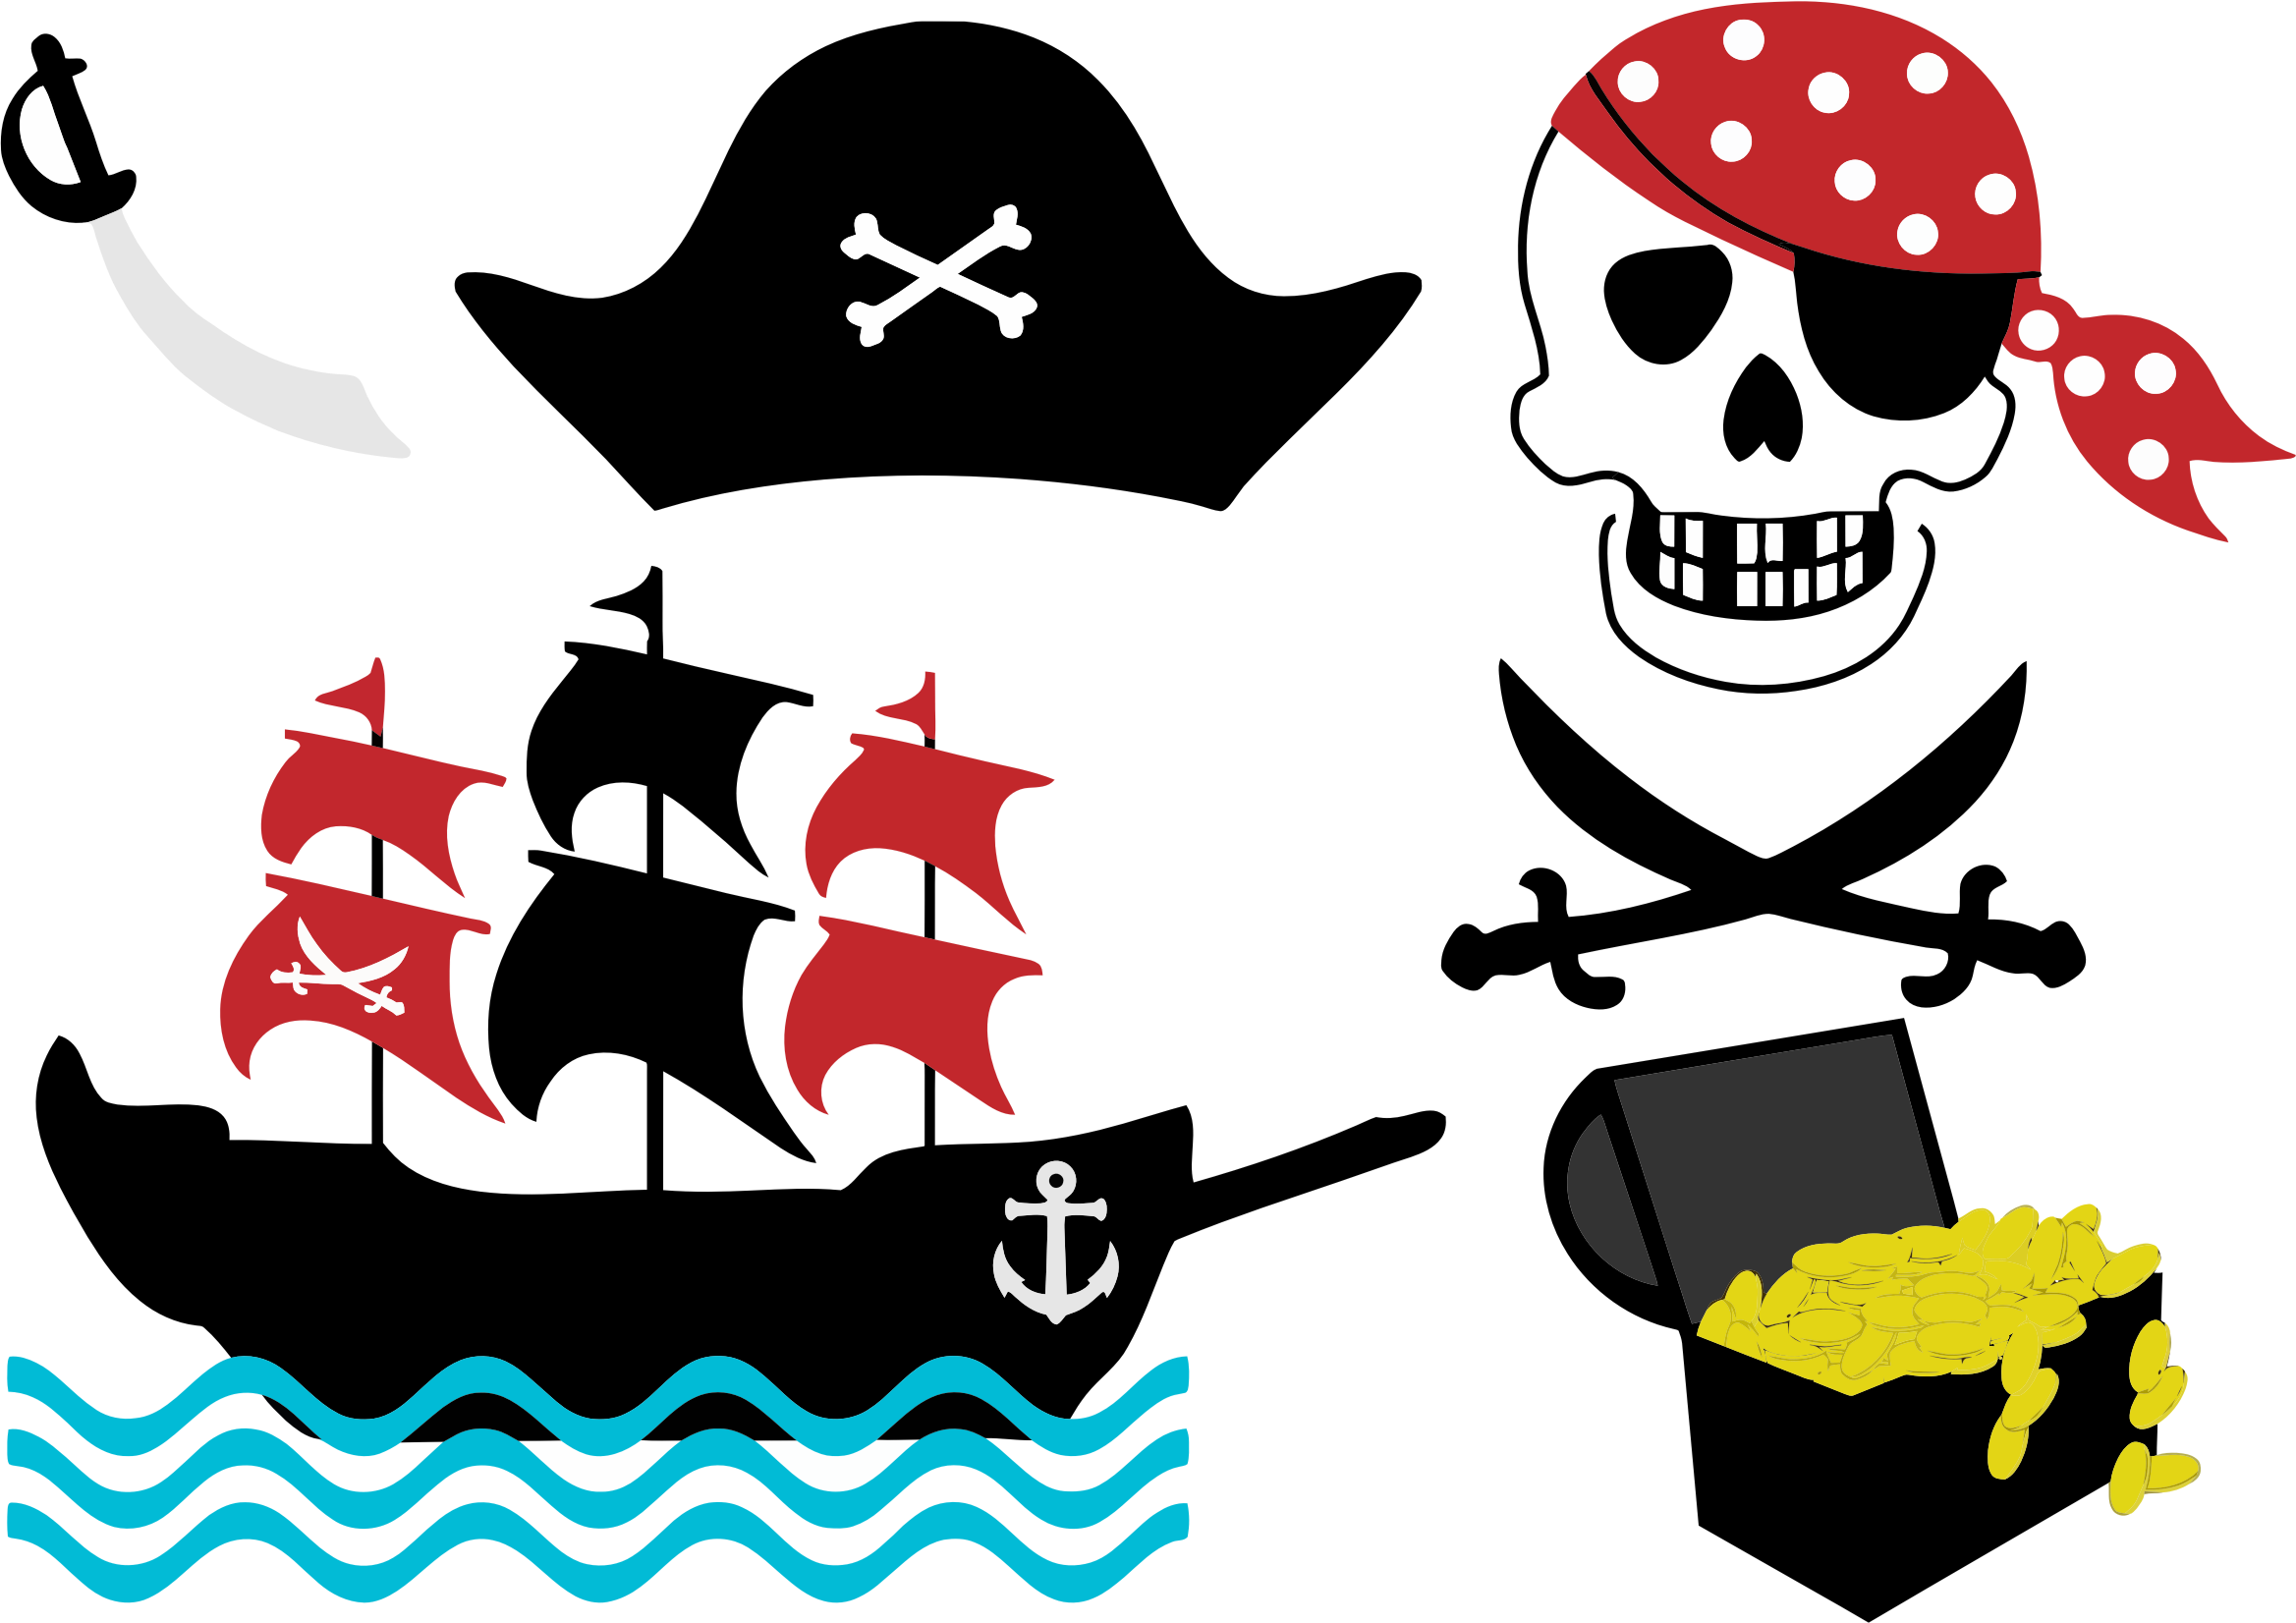 https://openclipart.org/image/2400px/svg_to_png/221913/Pirate-Paraphernalia.png